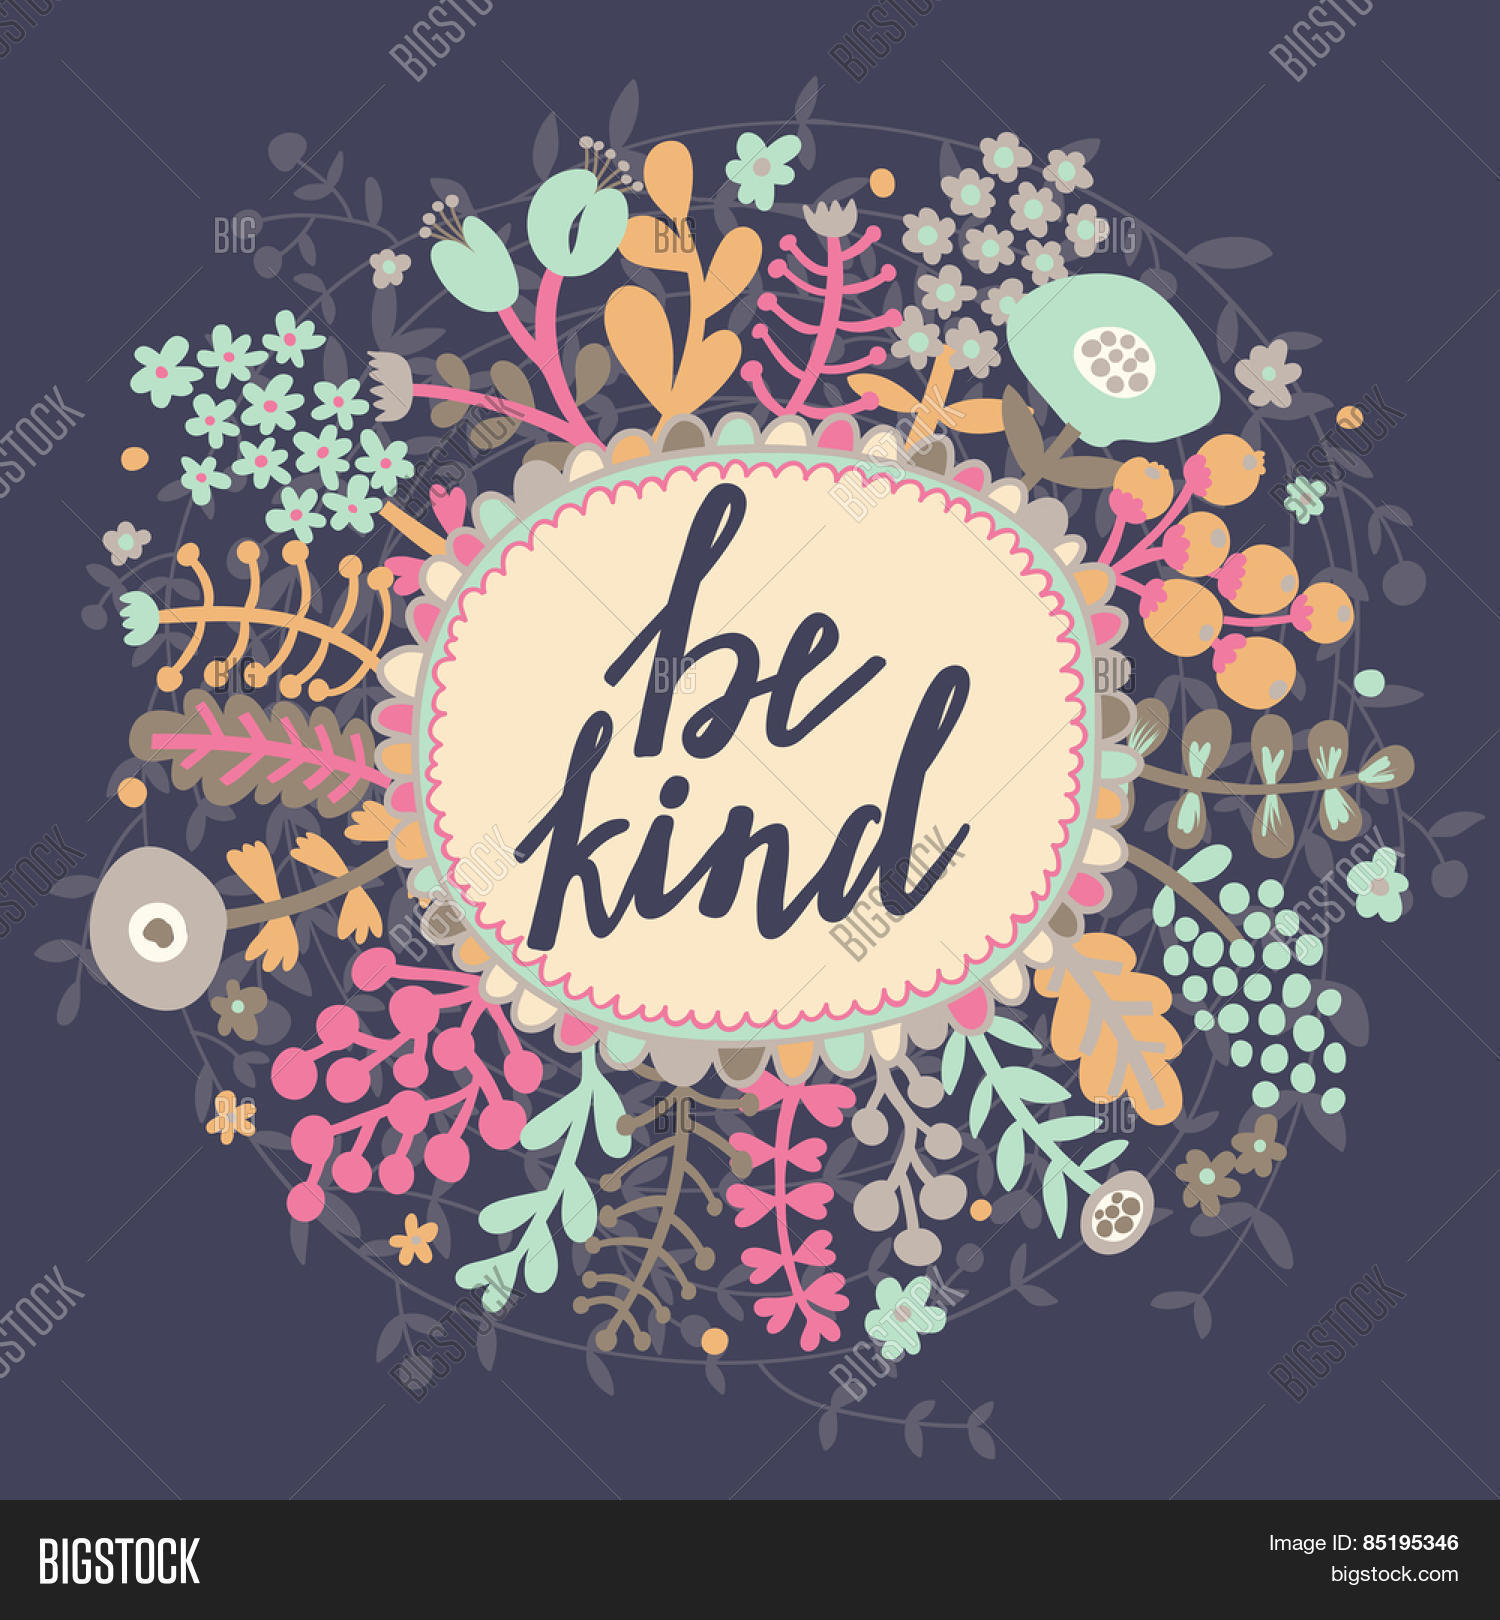 Floral Positive Motivational Quotes: Be Kind. Inspirational Vector & Photo